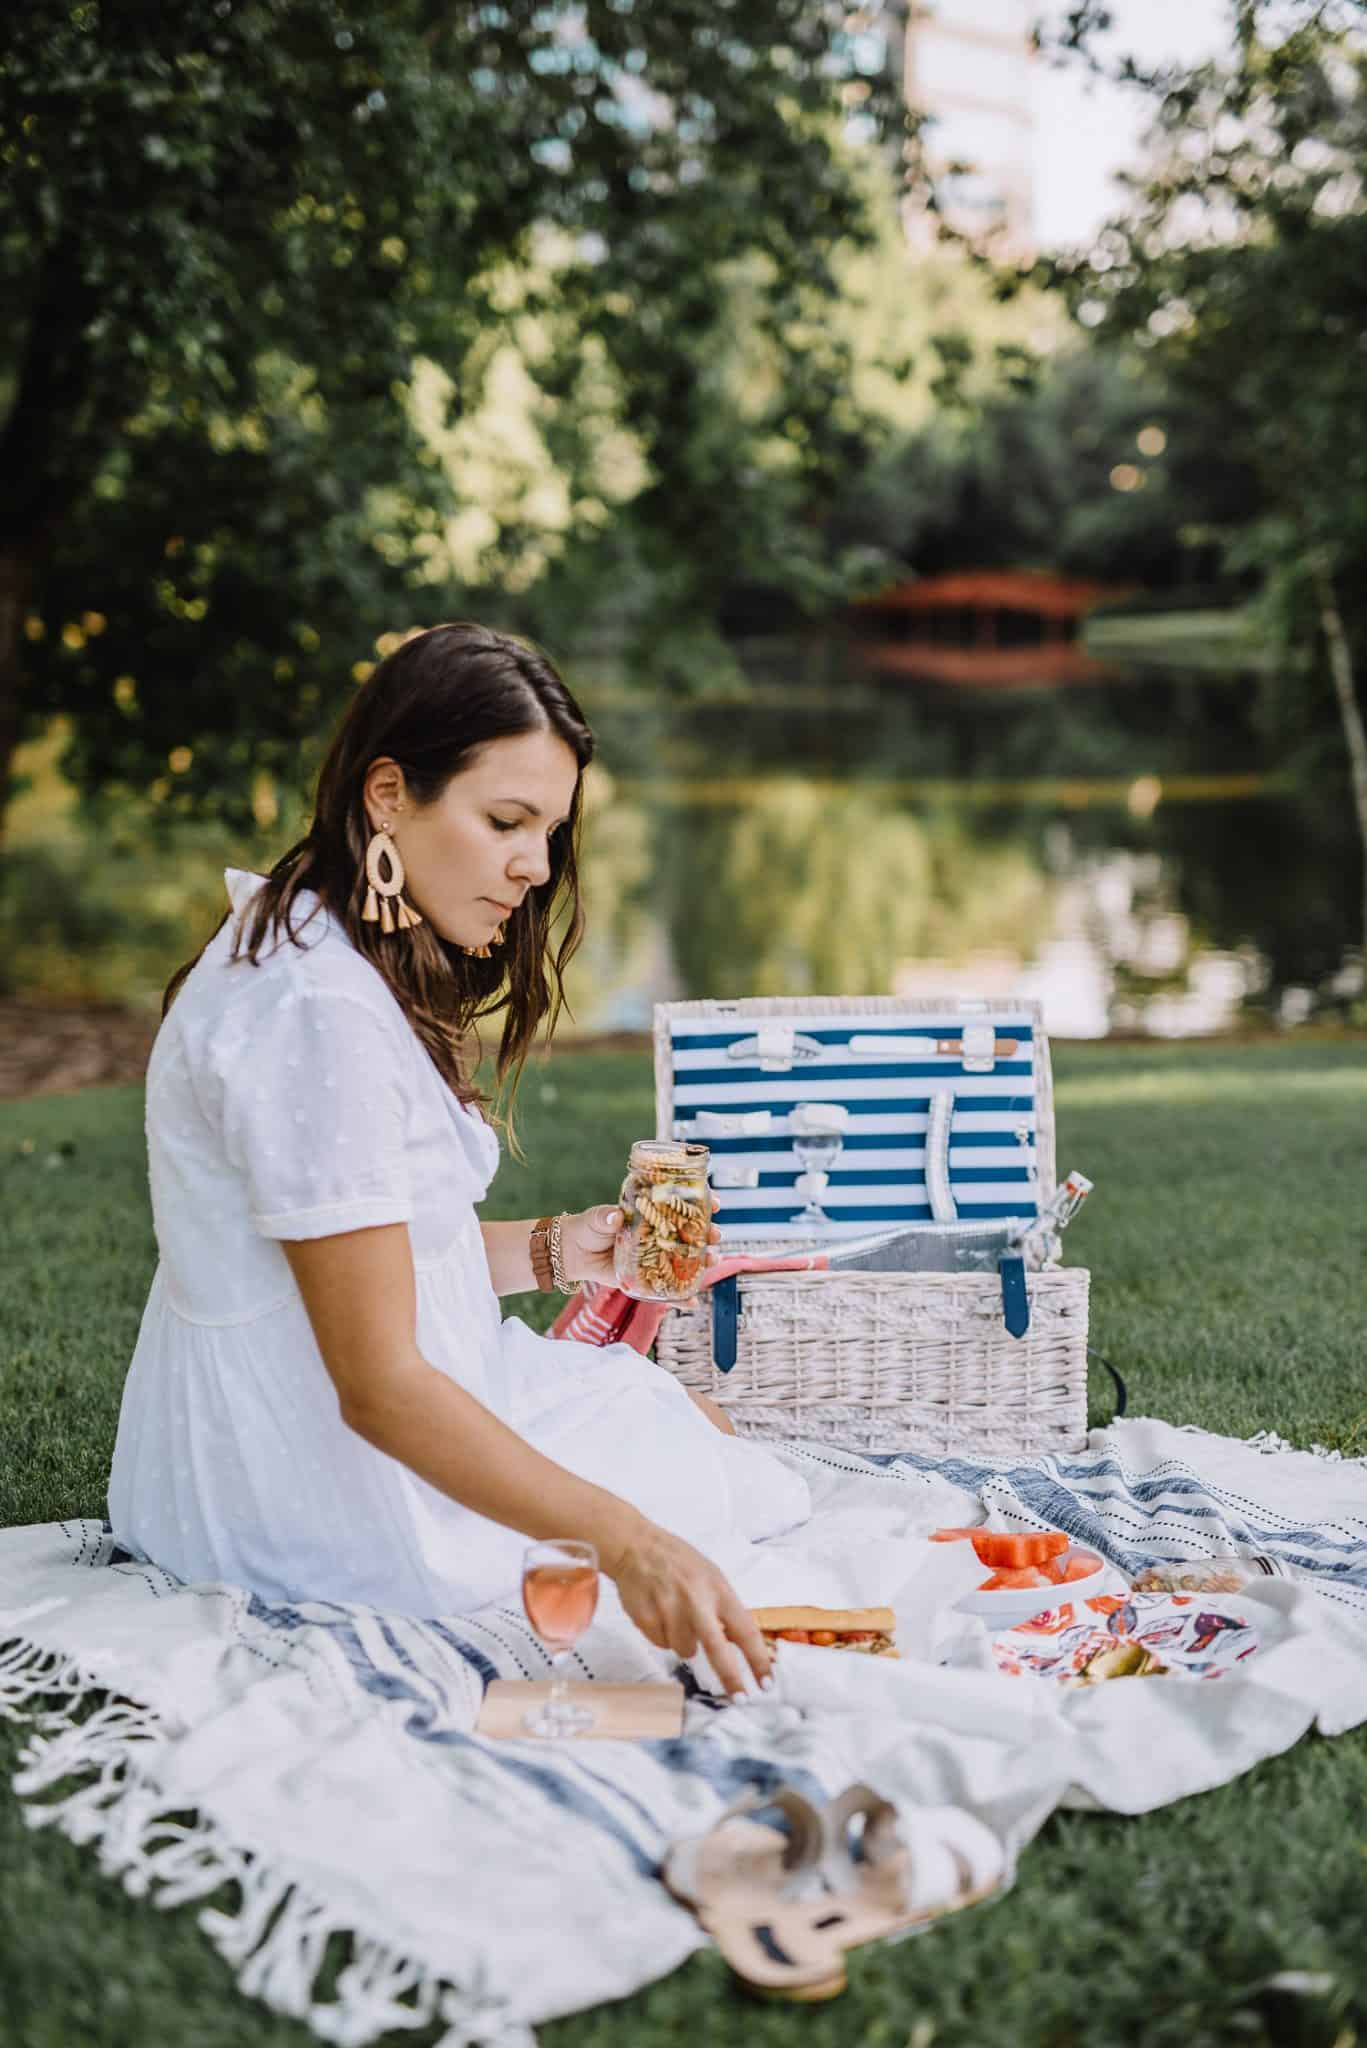 How To Have A Perfect Summertime Picnic